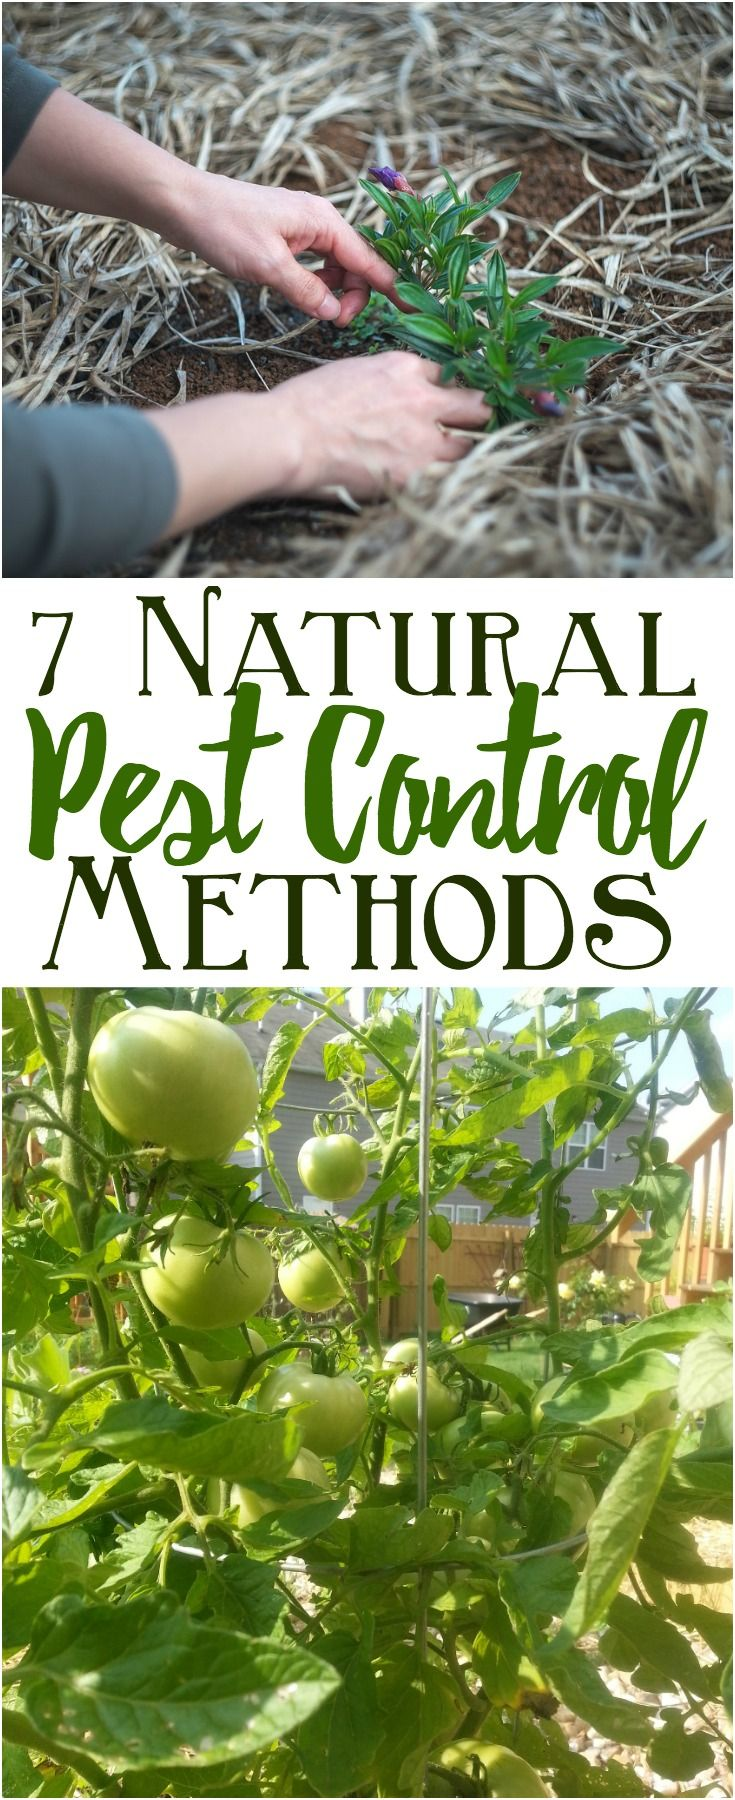 Try These Natural Pest Control Methods For Garden Pest Control Natural Sprays Soil Fertility And Compan Garden Pest Control Natural Pest Control Garden Pests